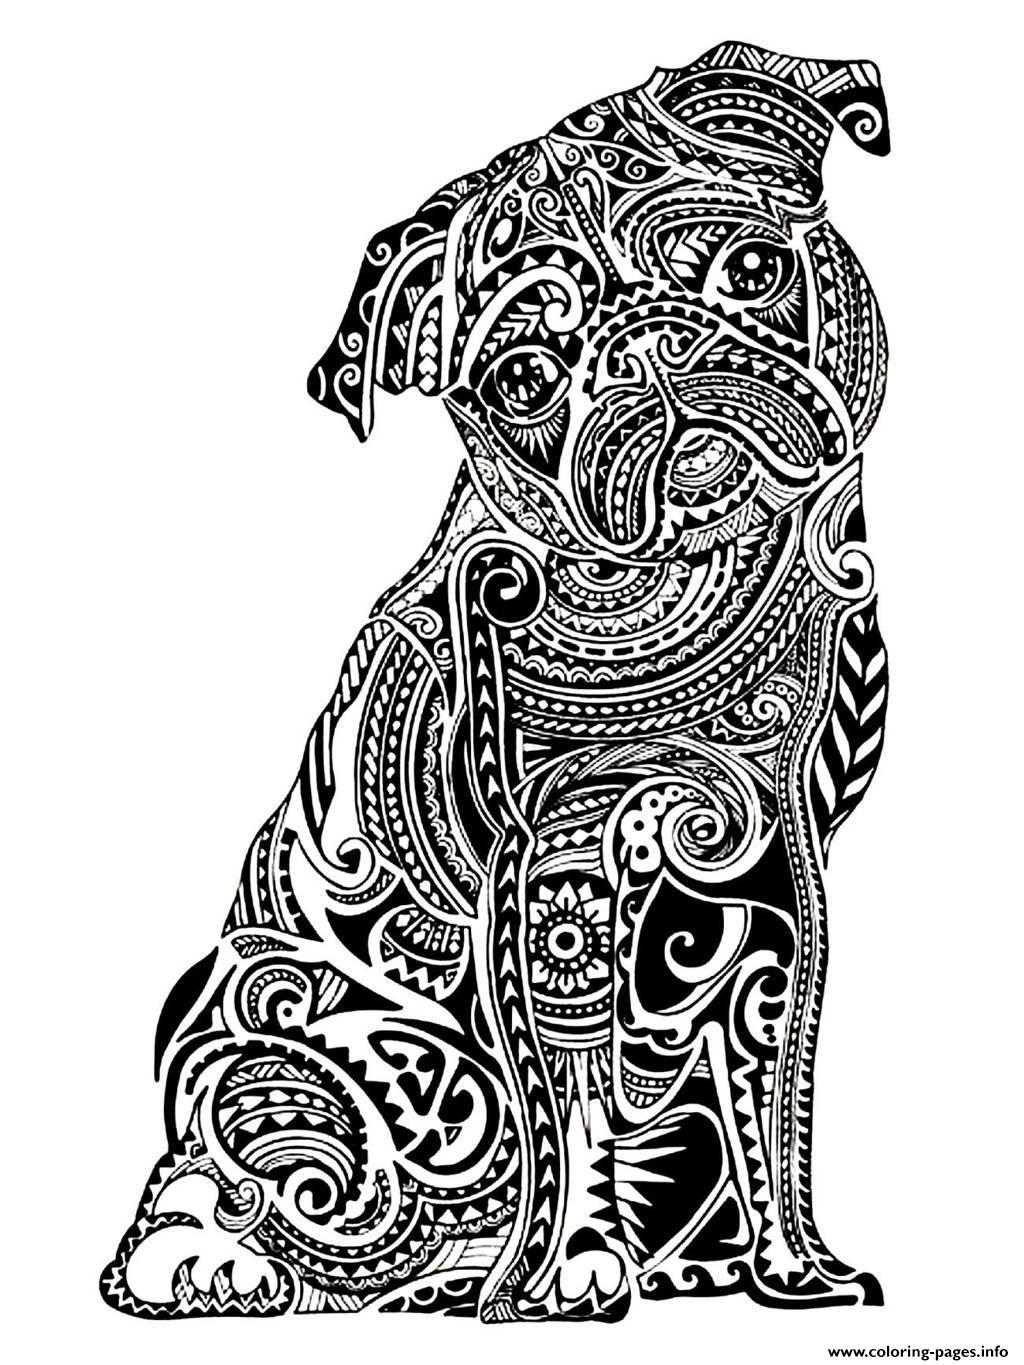 Adult Difficult Little Buldog coloring pages